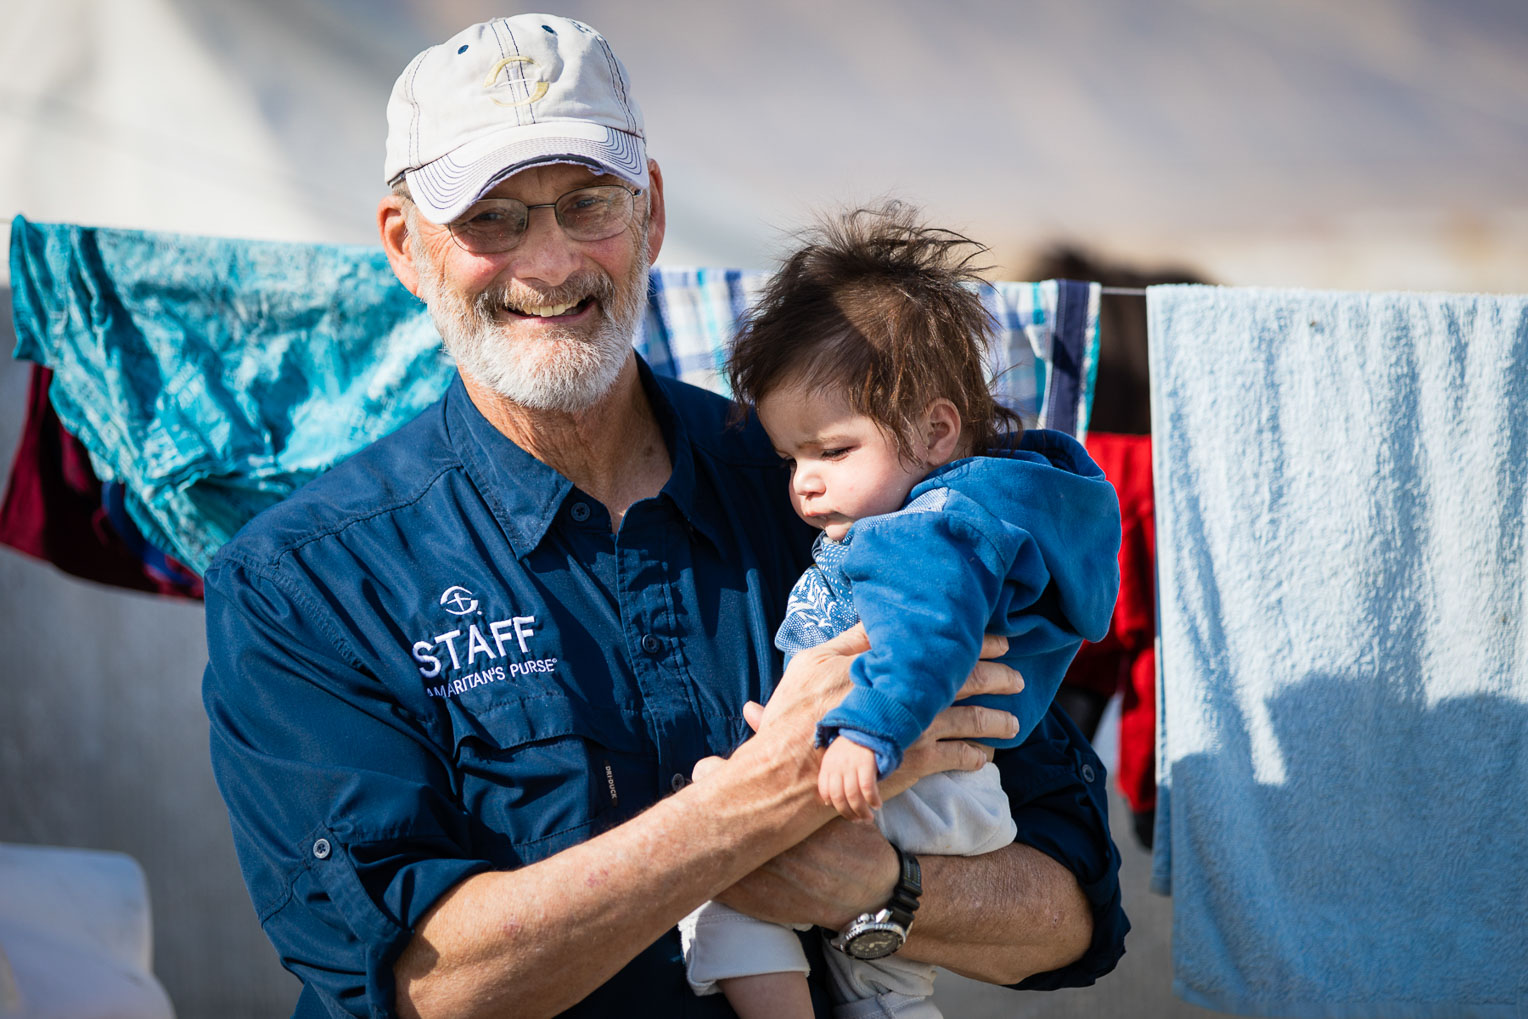 Samaritan's Purse disaster response specialists are caring for refugees in Bardarash camp in Jesus' Name.